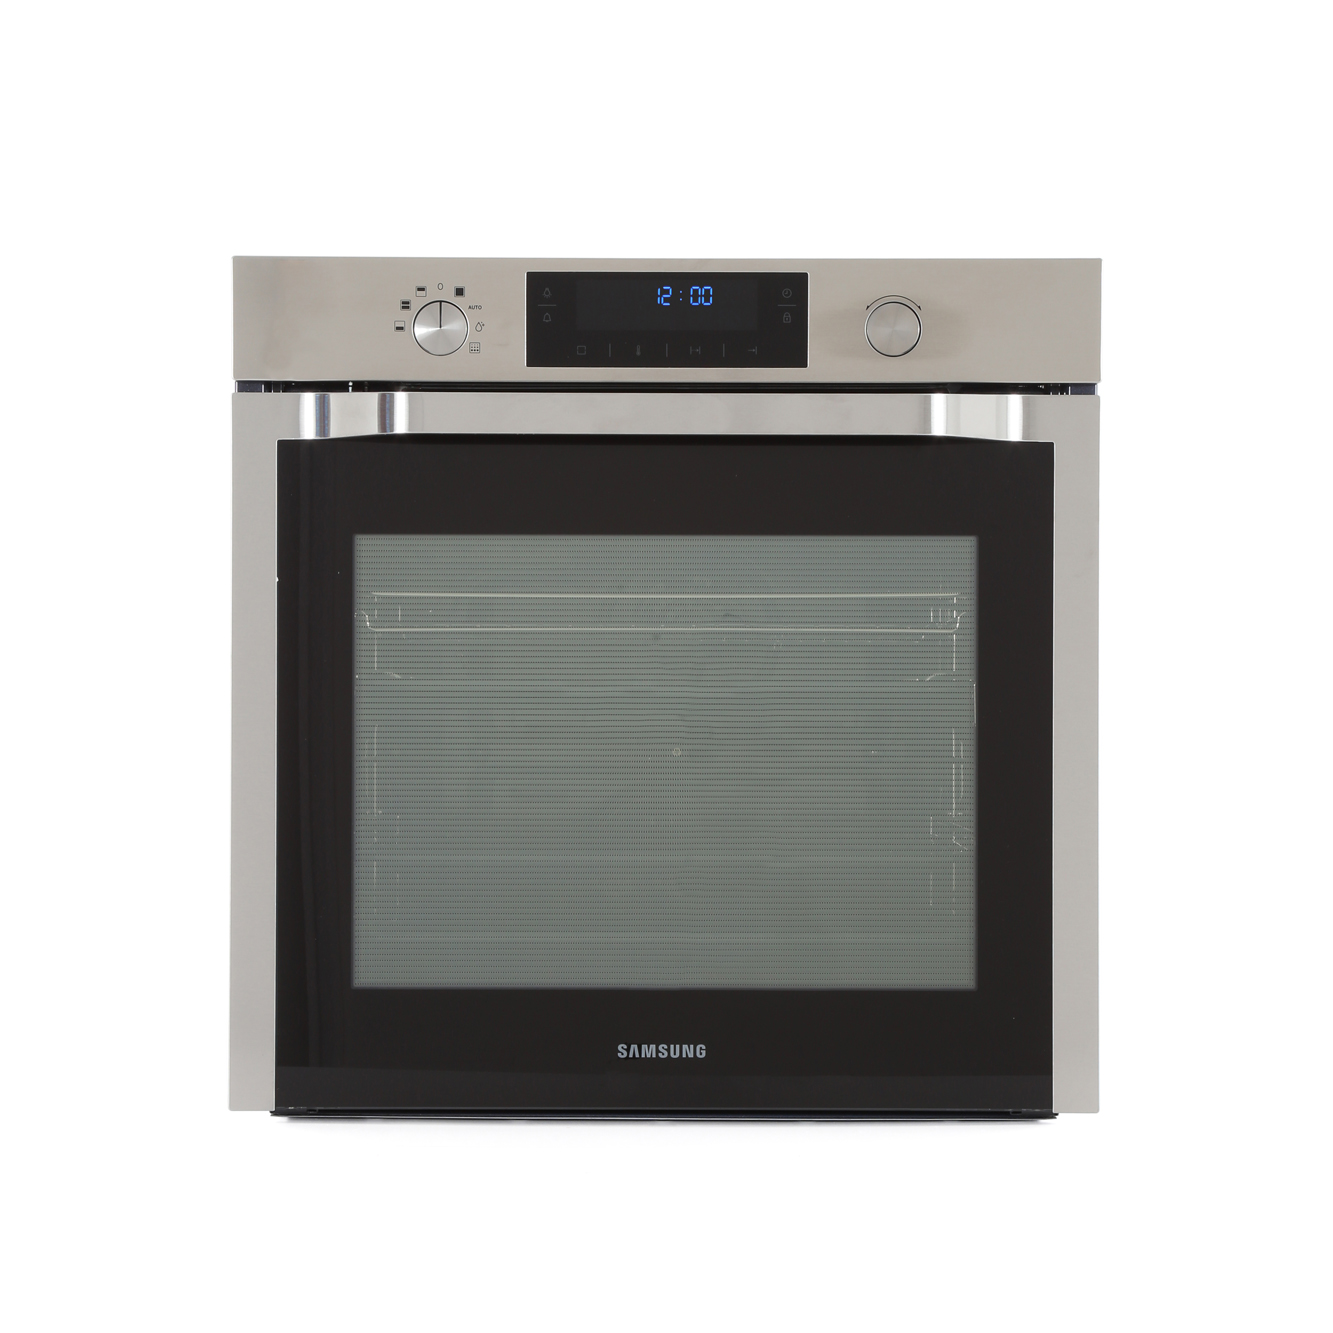 Samsung NV70F7796ES Single Built In Electric Oven